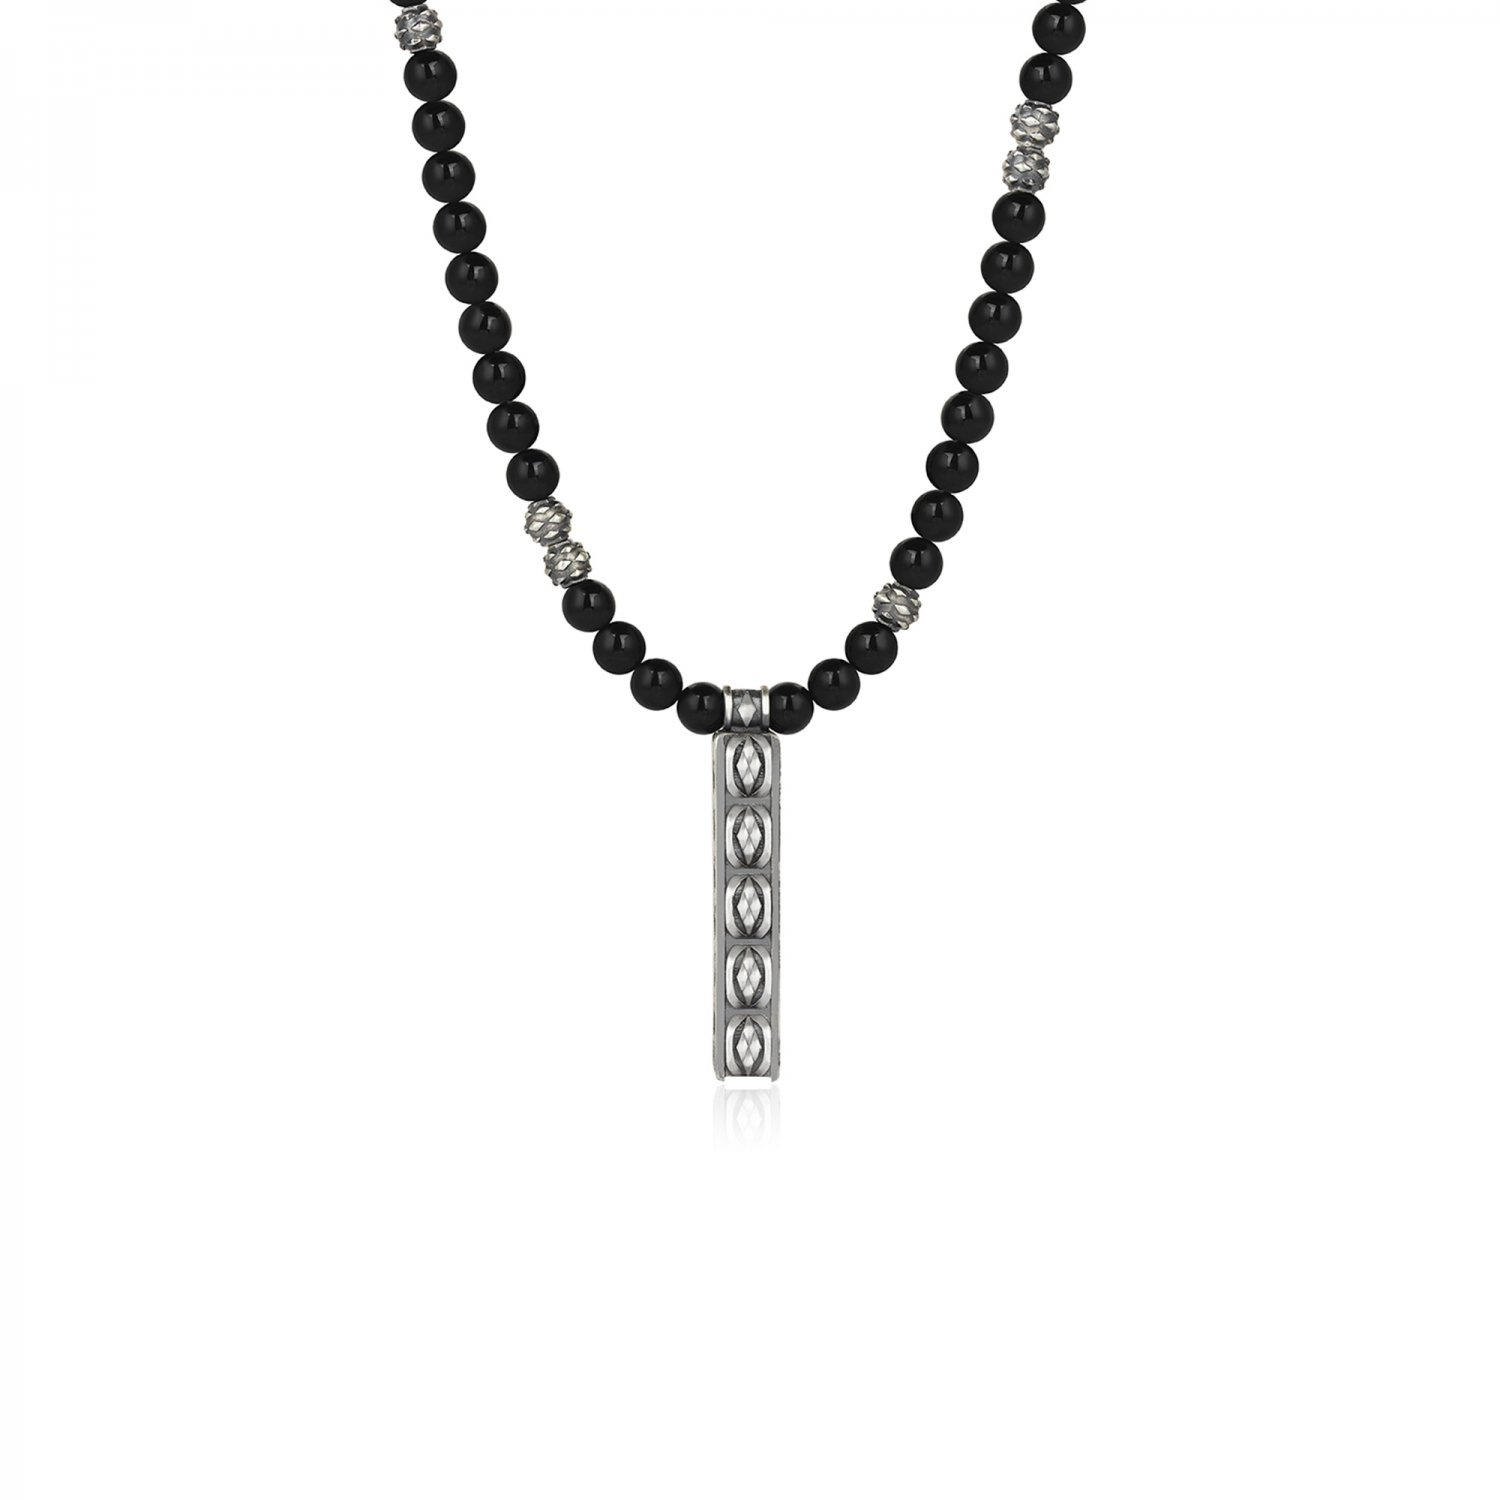 Oxidised Silver Cubic Snake Black Onyx Bead Necklace